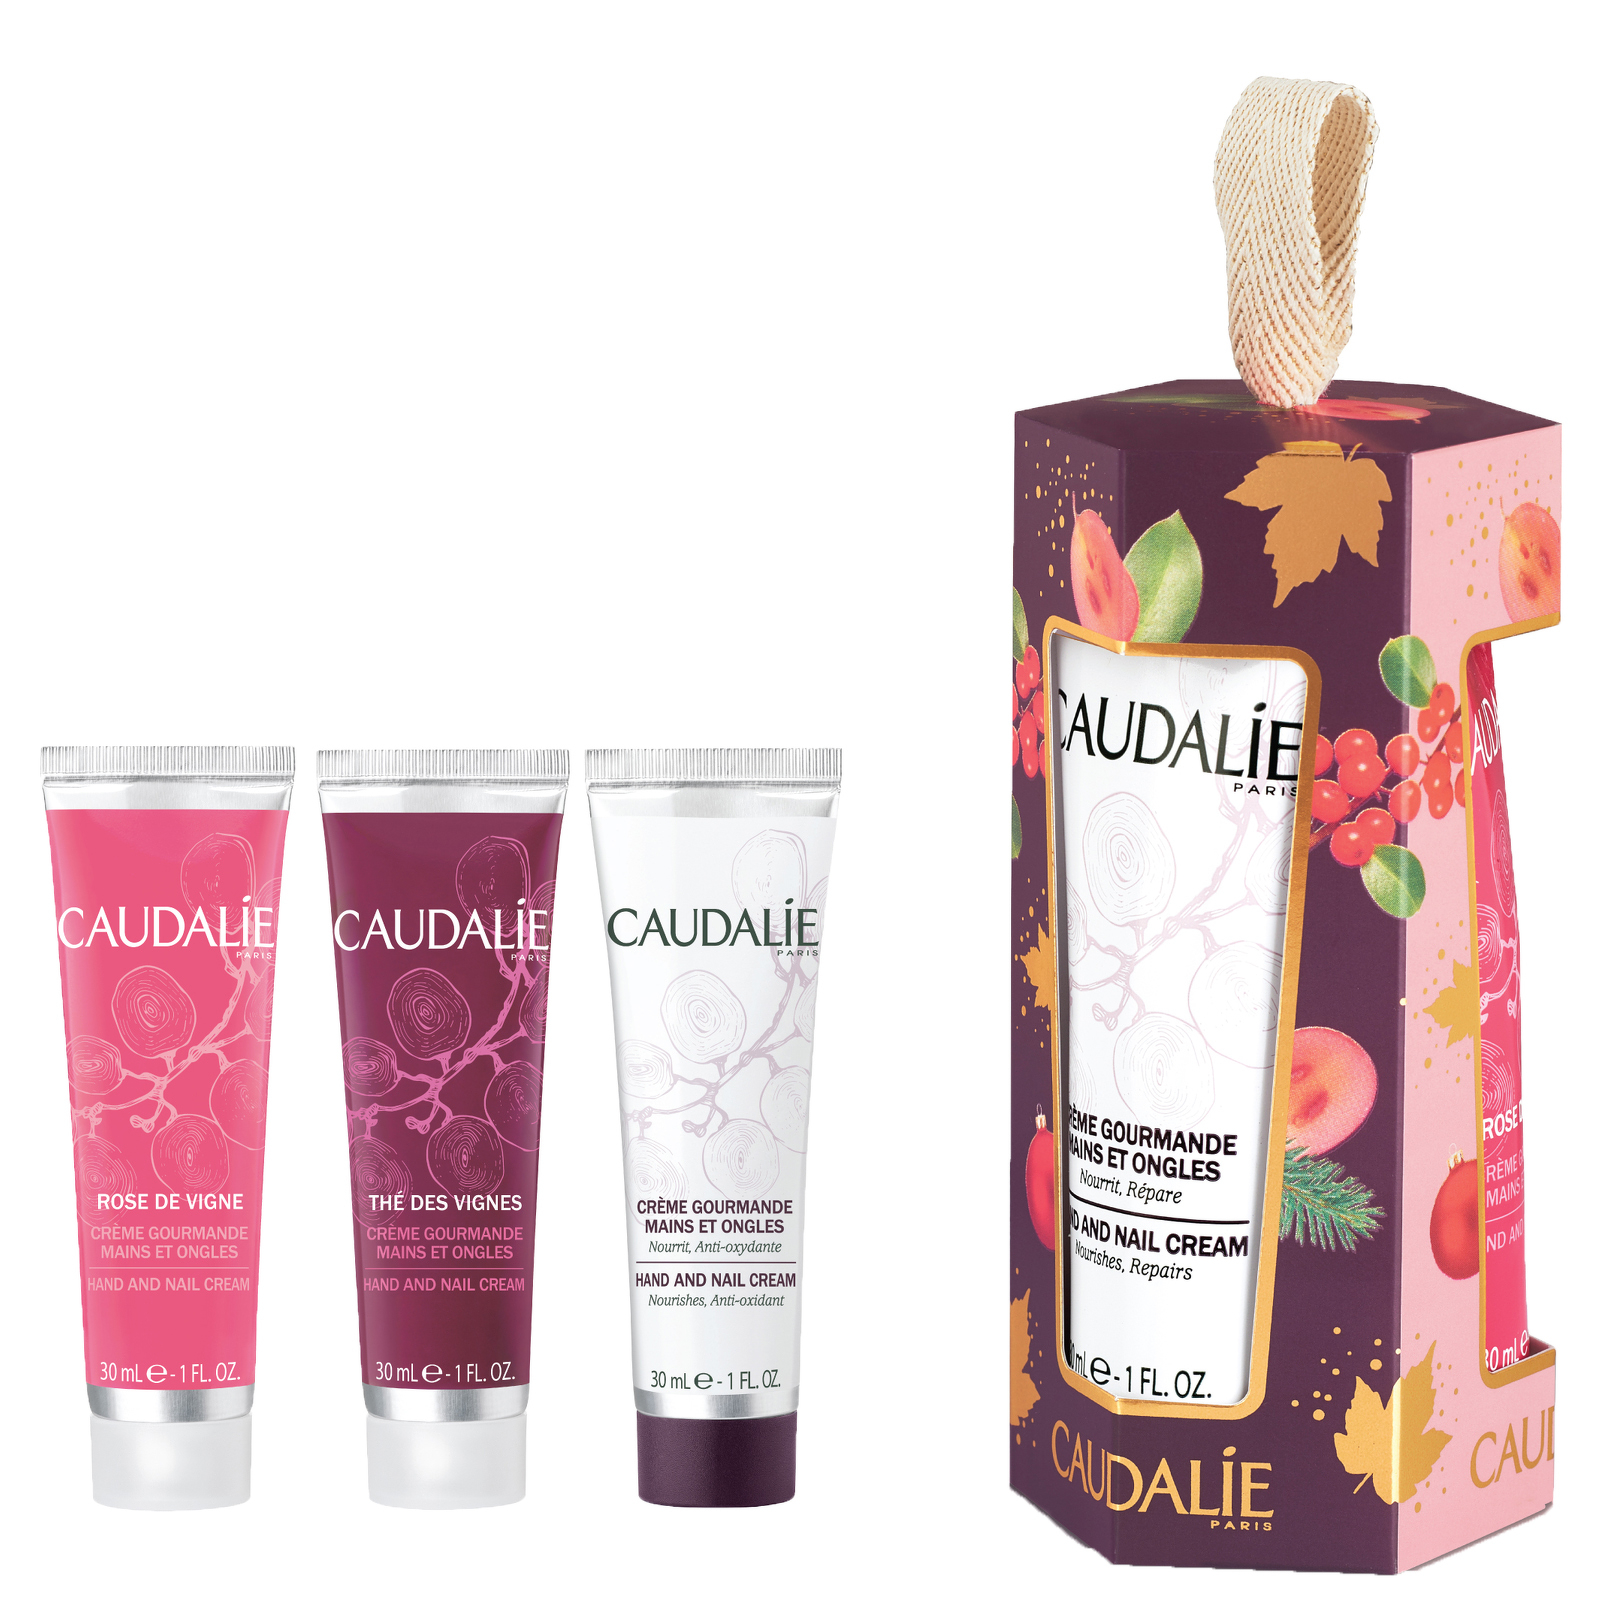 Caudalie Christmas 2020 Luxury Hand Cream Trio